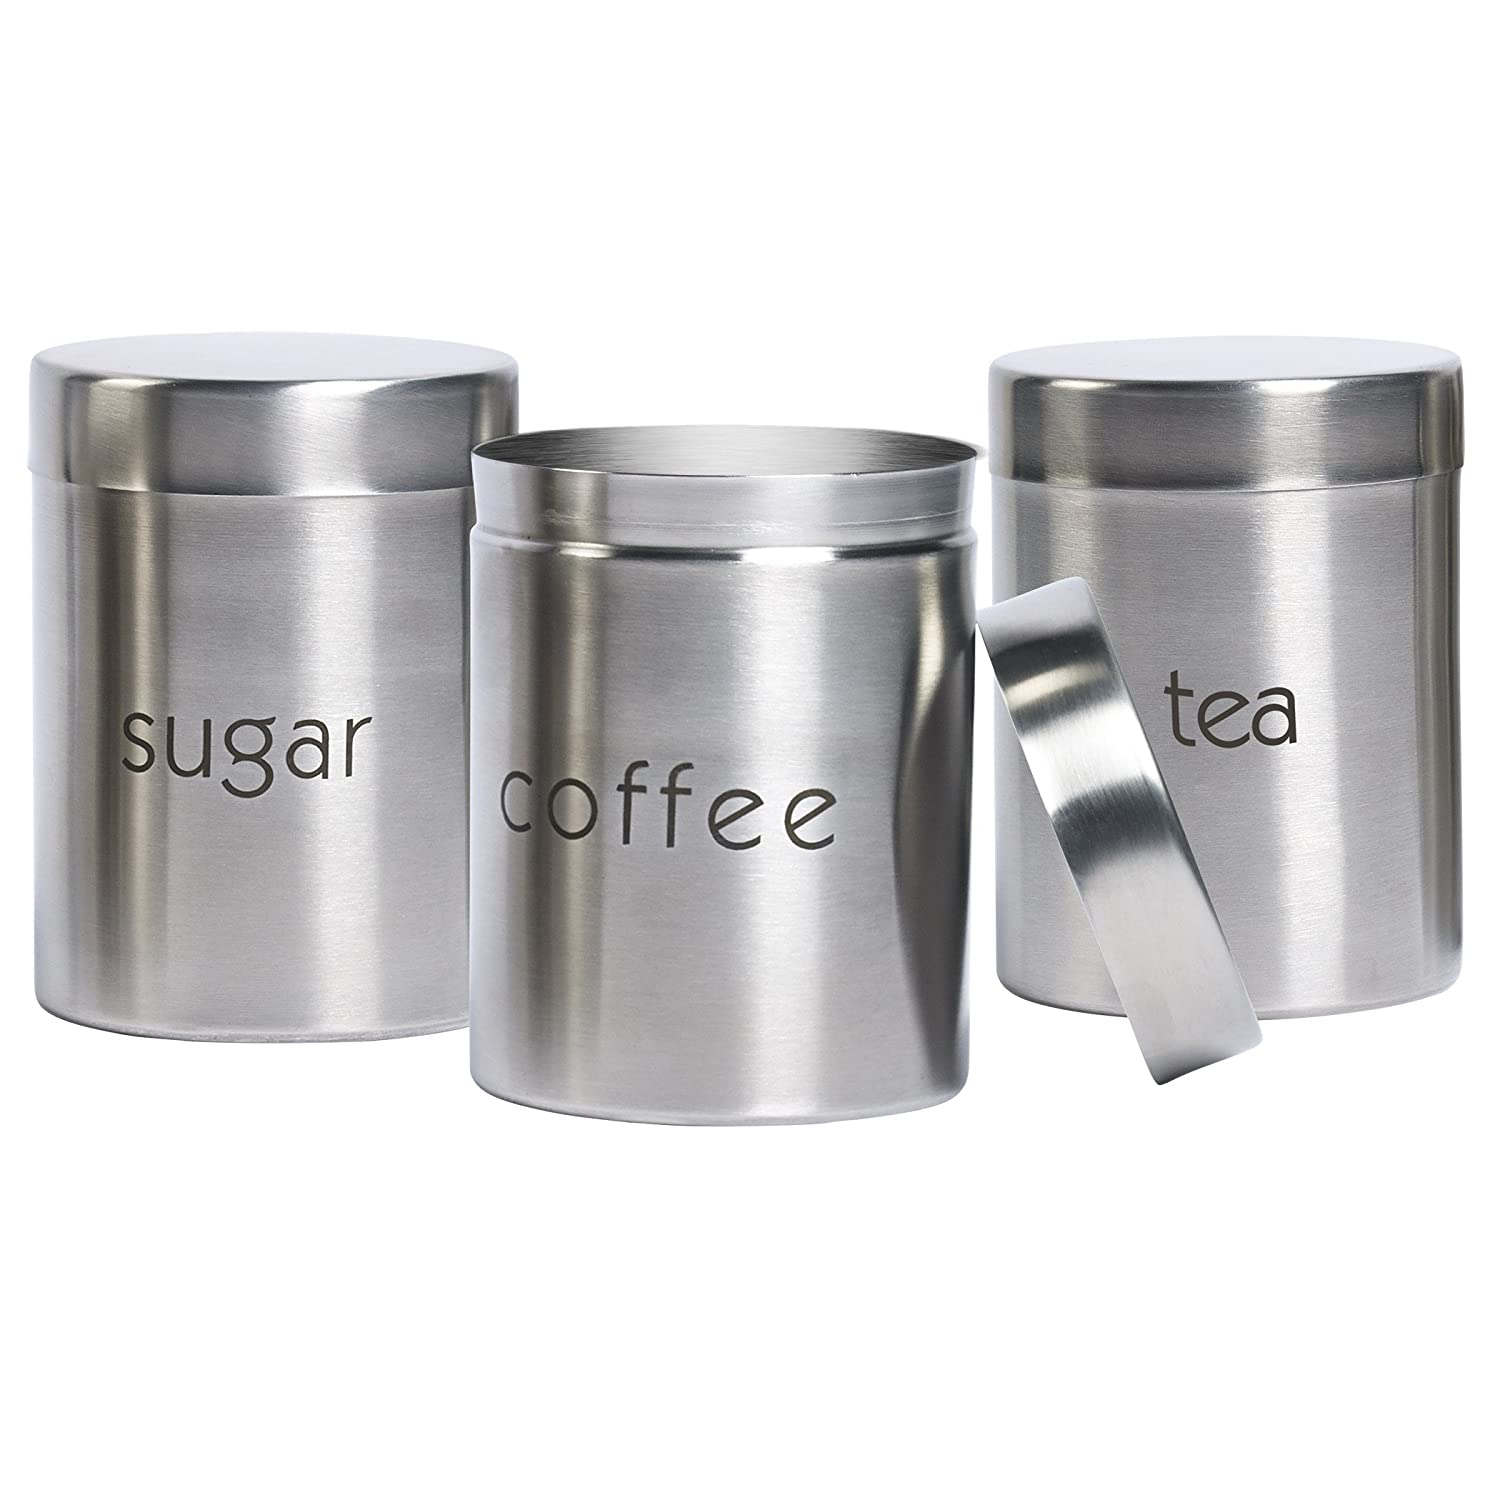 Amazon.com: 3 Piece Stainless Steel Canister Set, Kitchen ...